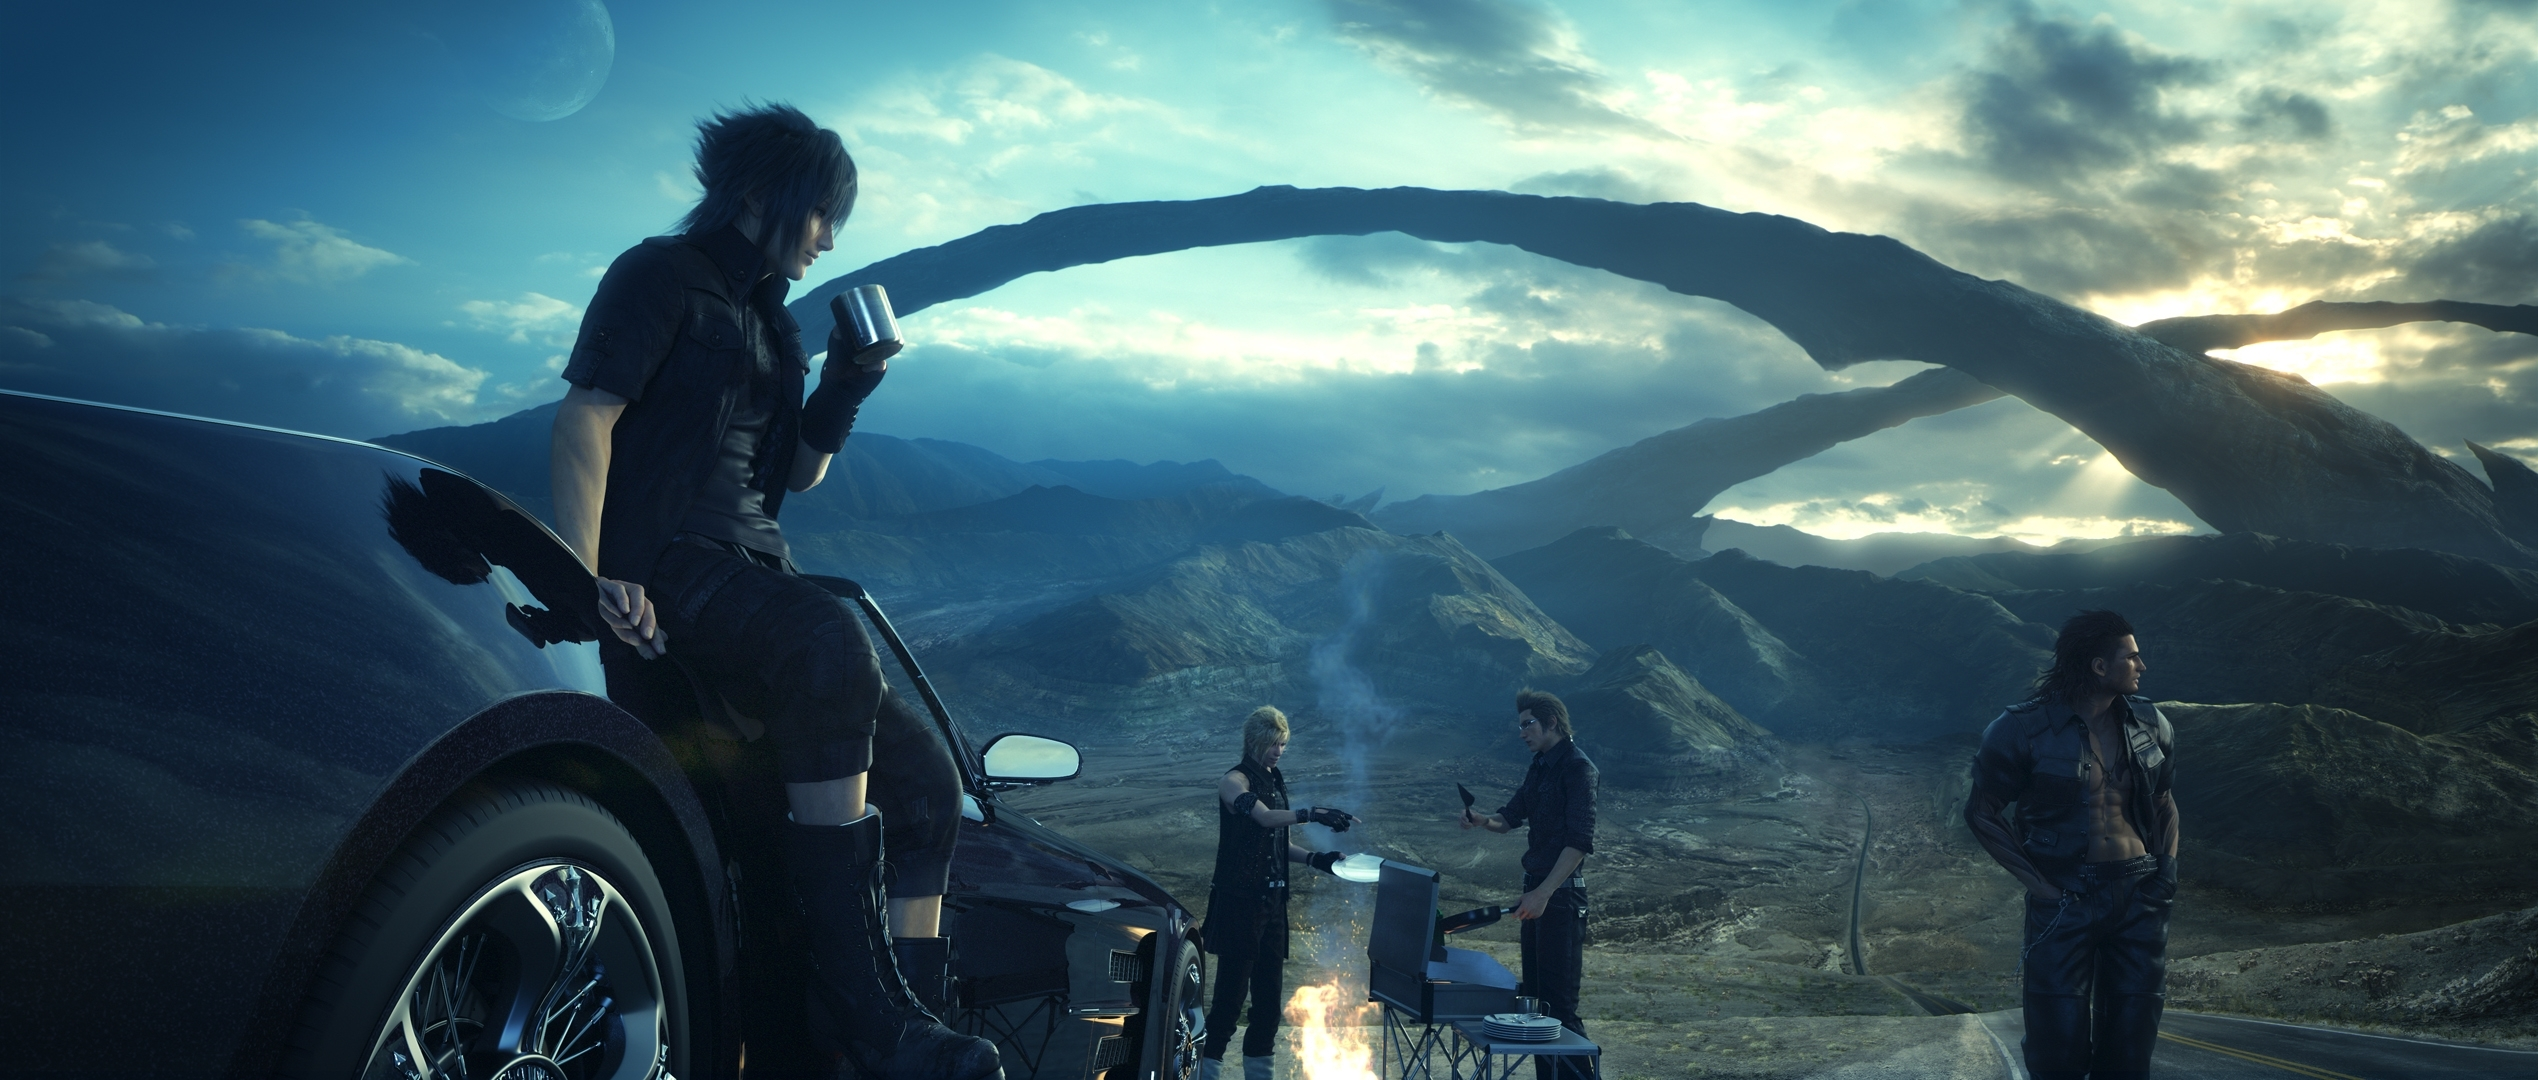 10 New Final Fantasy Xv Wallpaper Hd FULL HD 1920×1080 For PC Desktop